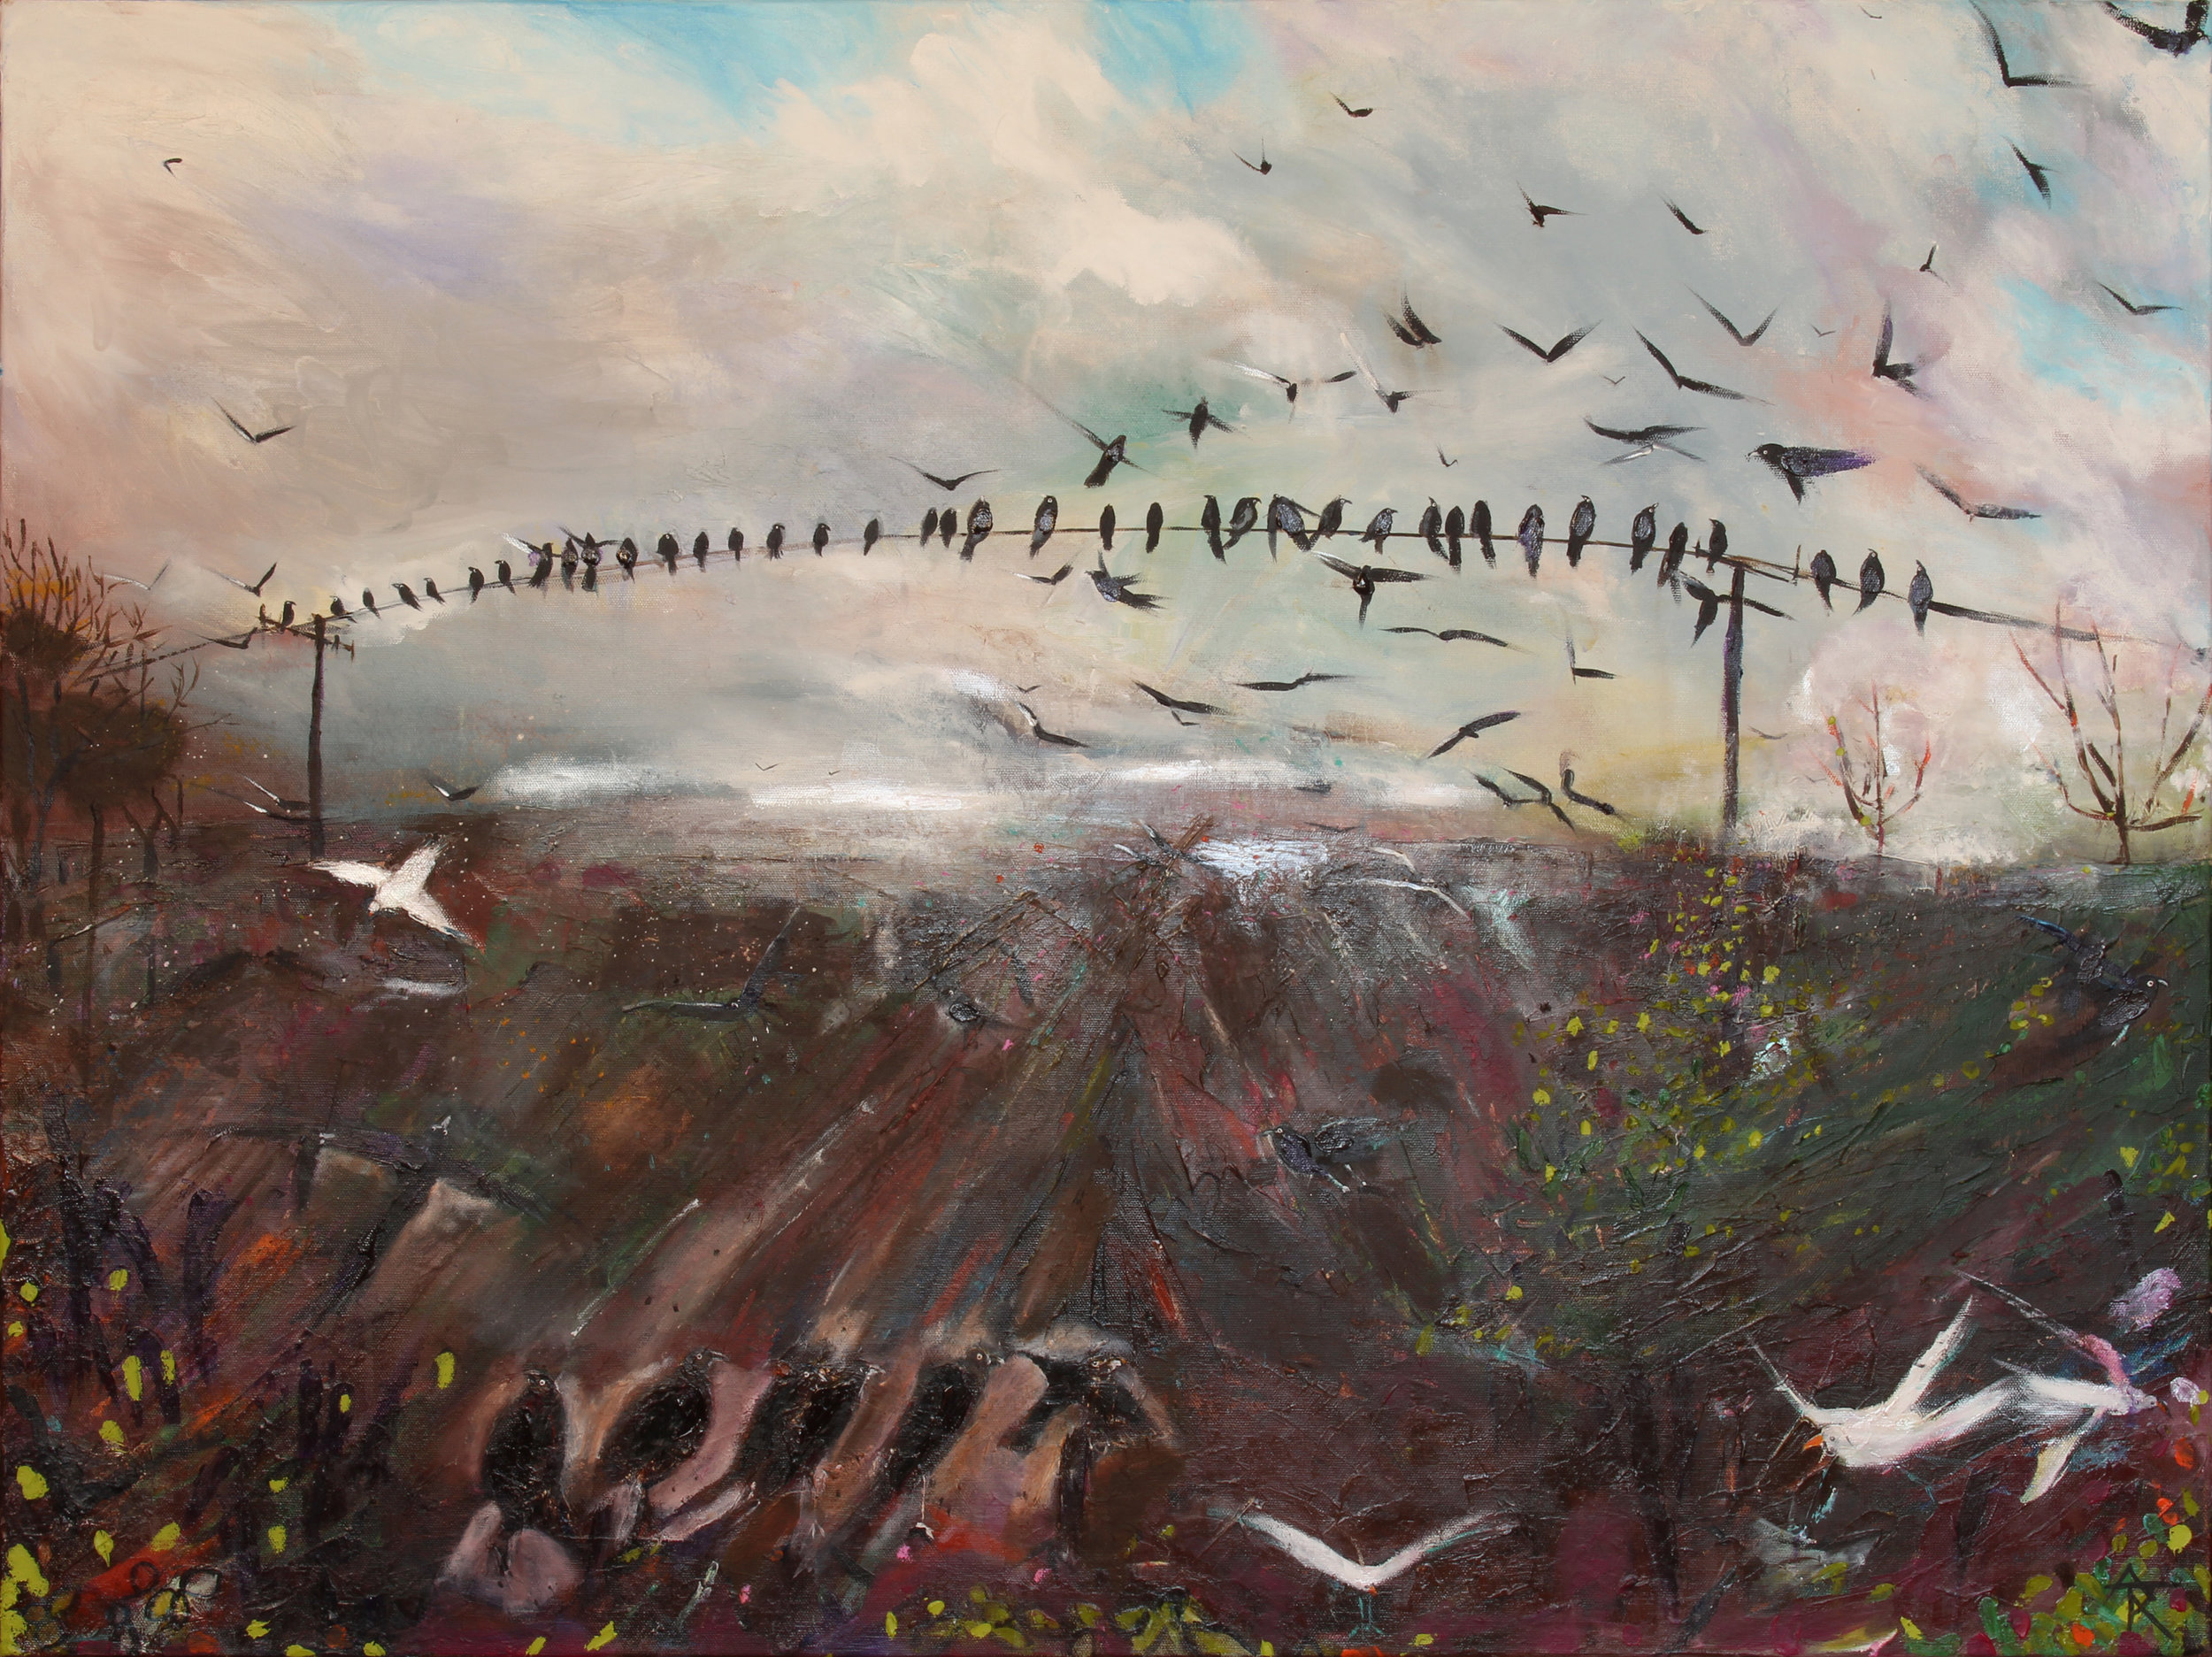 Flight Of The Birds, acrylic on canvas, 82 x 107 cm